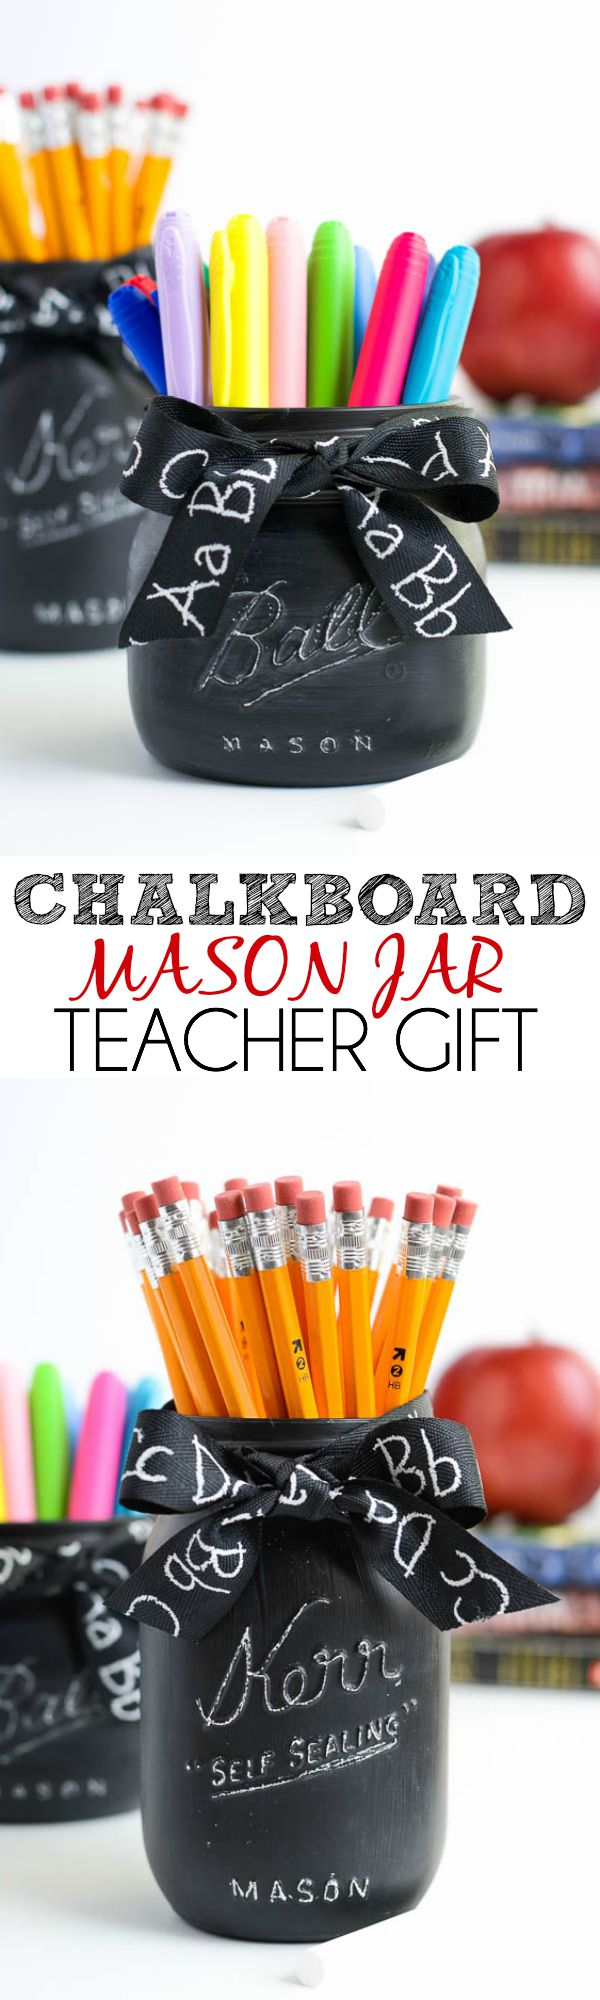 Chalkboard-Mason-Jar-Teacher-Gift